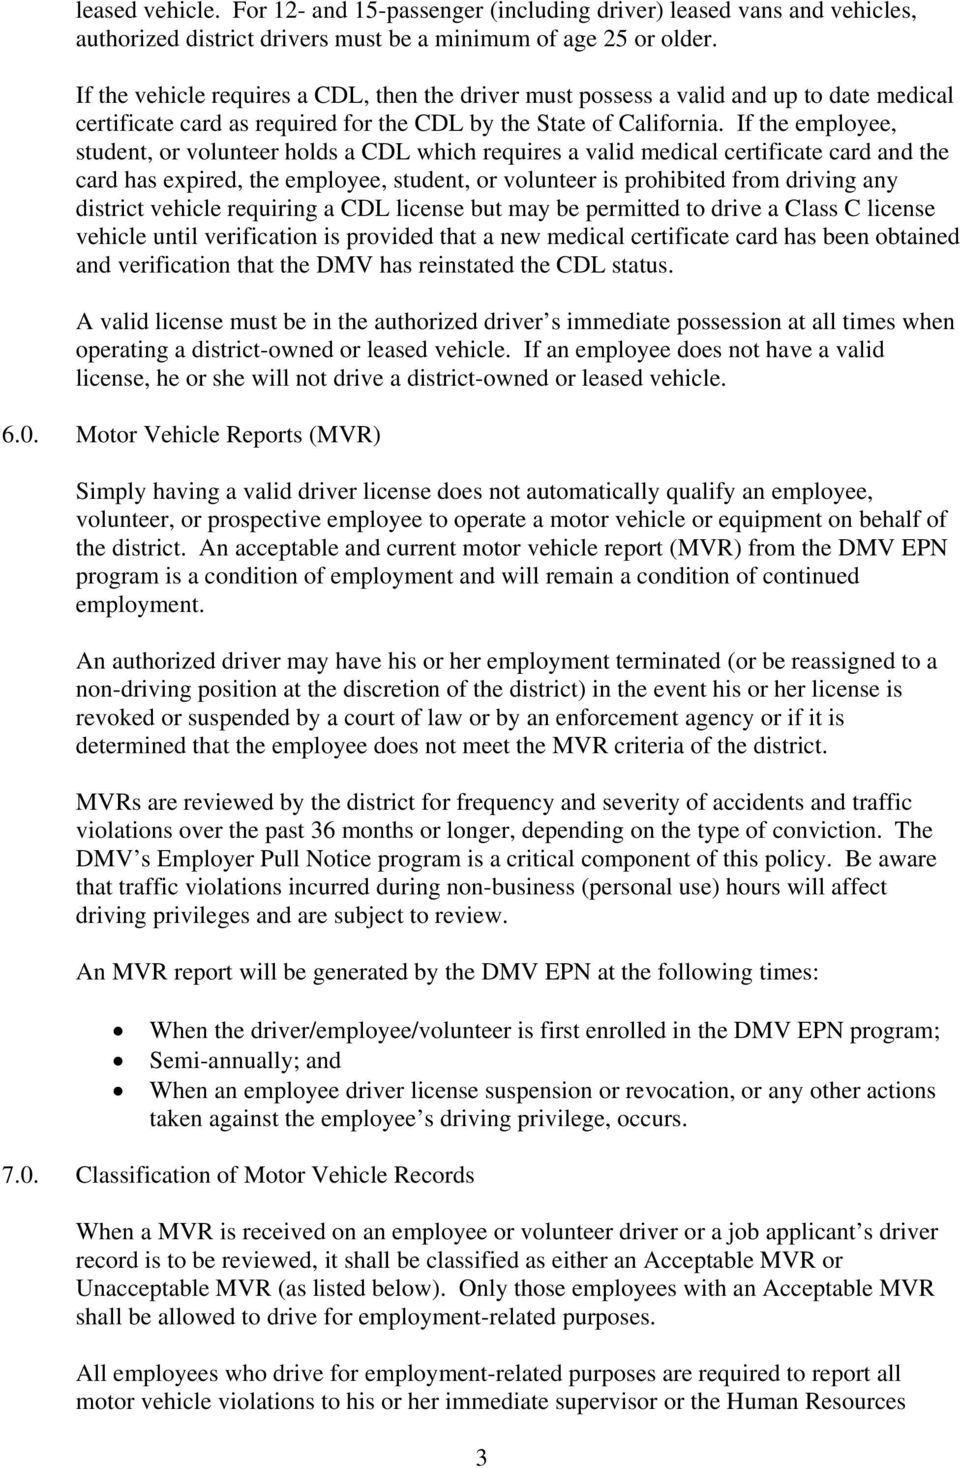 If the employee, student, or volunteer holds a CDL which requires a valid medical certificate card and the card has expired, the employee, student, or volunteer is prohibited from driving any